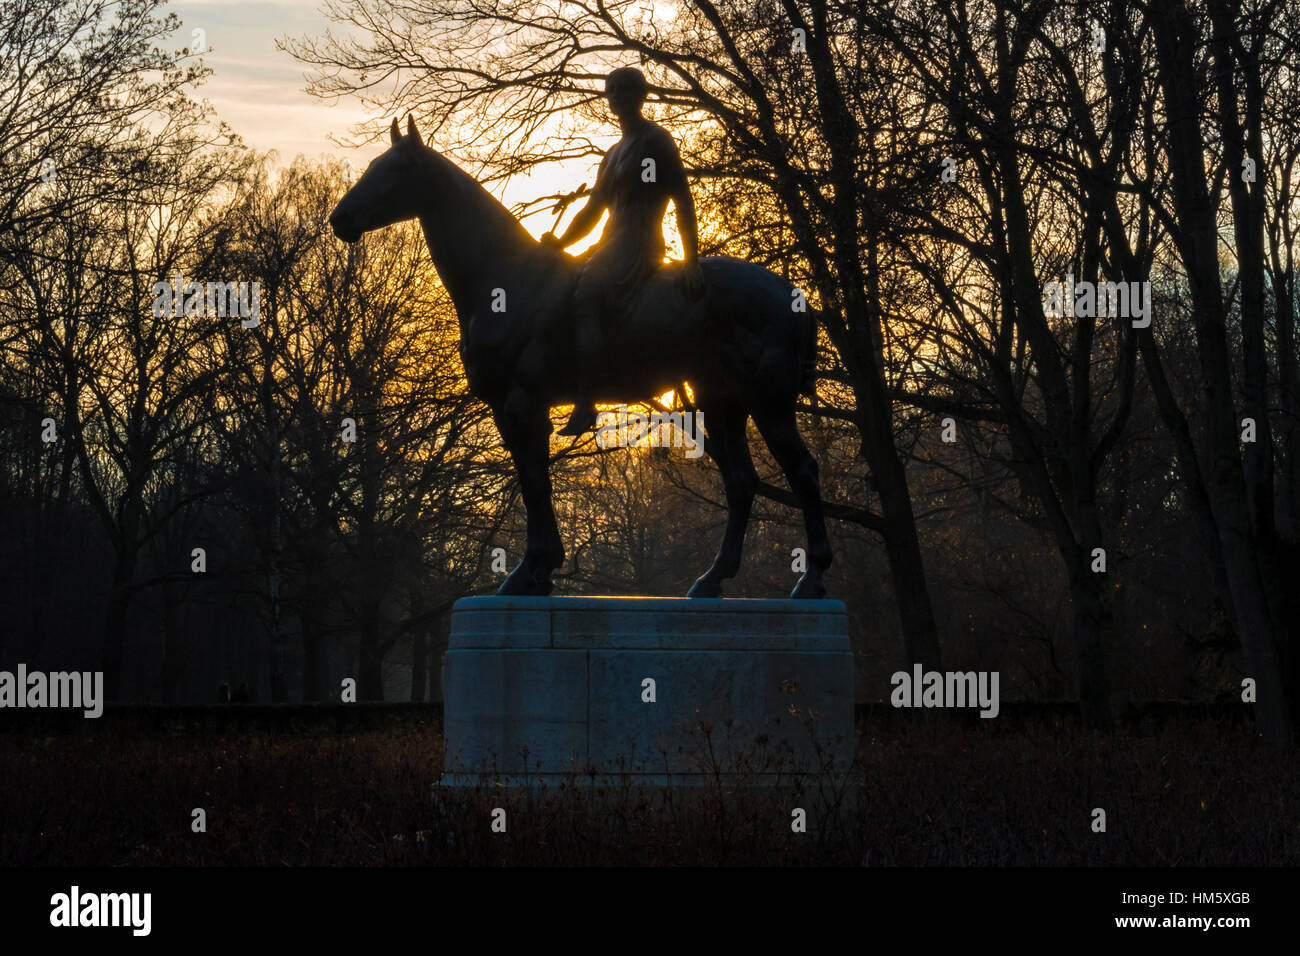 Statue of a woman riding a horse in the Tiergarten in Berlin - Stock Image